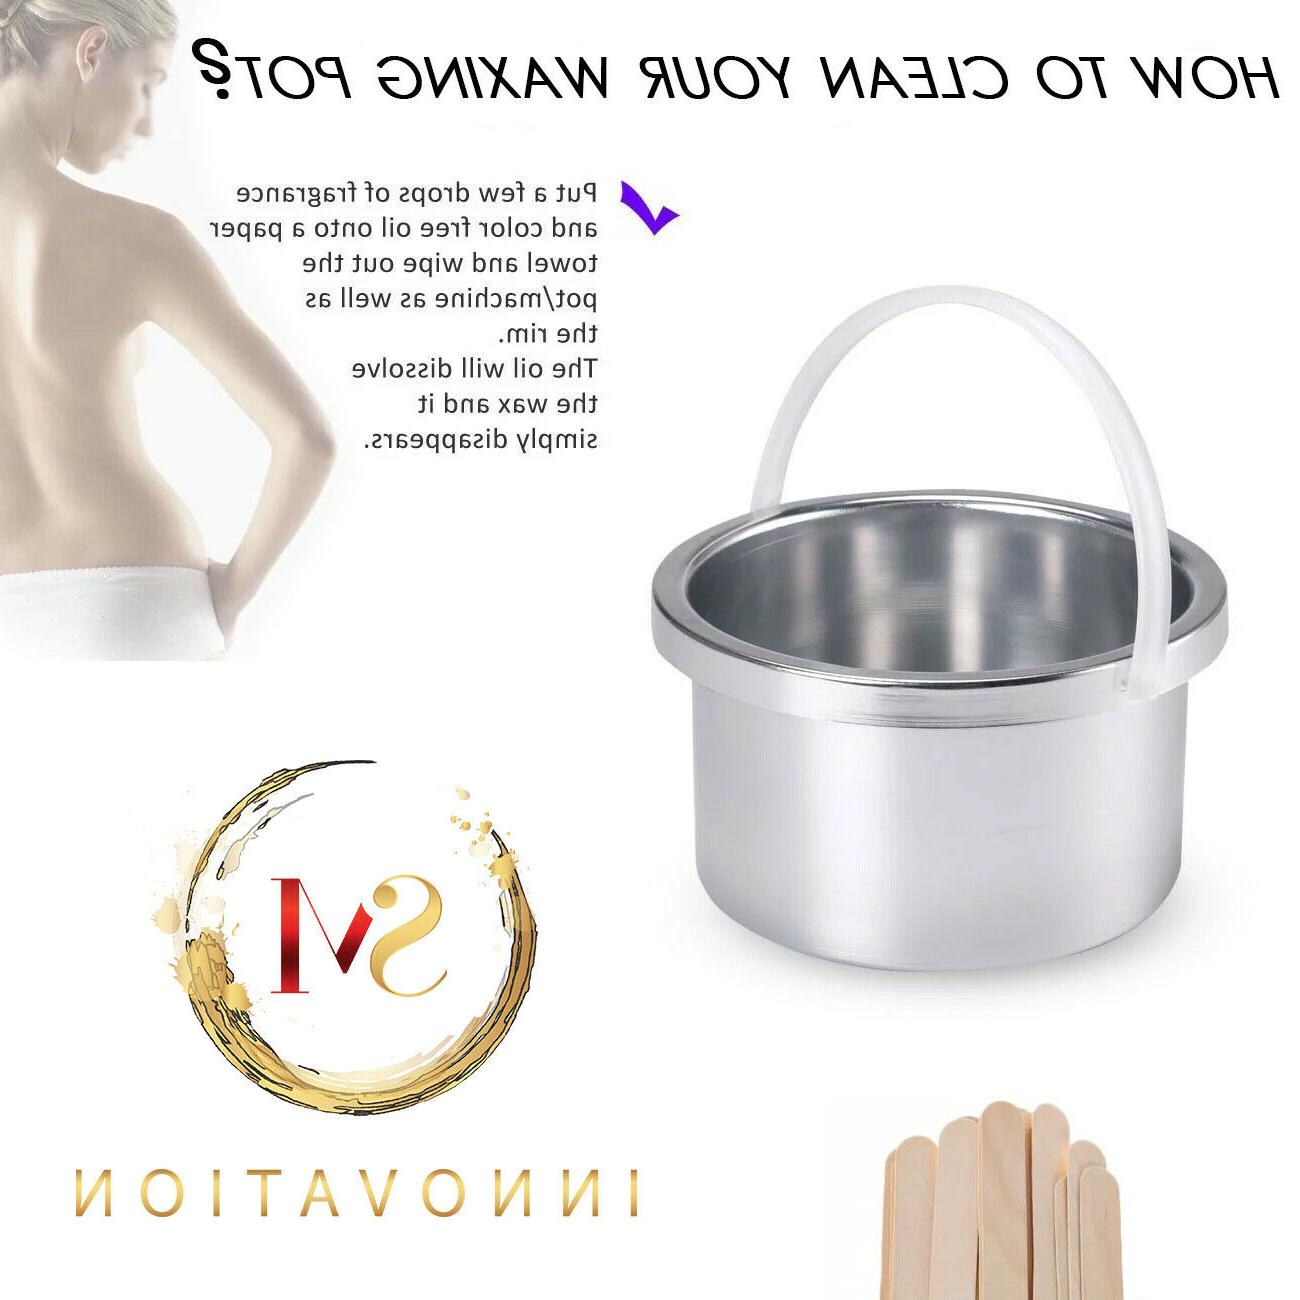 Hair Removal Electric Warmer Waxing + Wax beans &